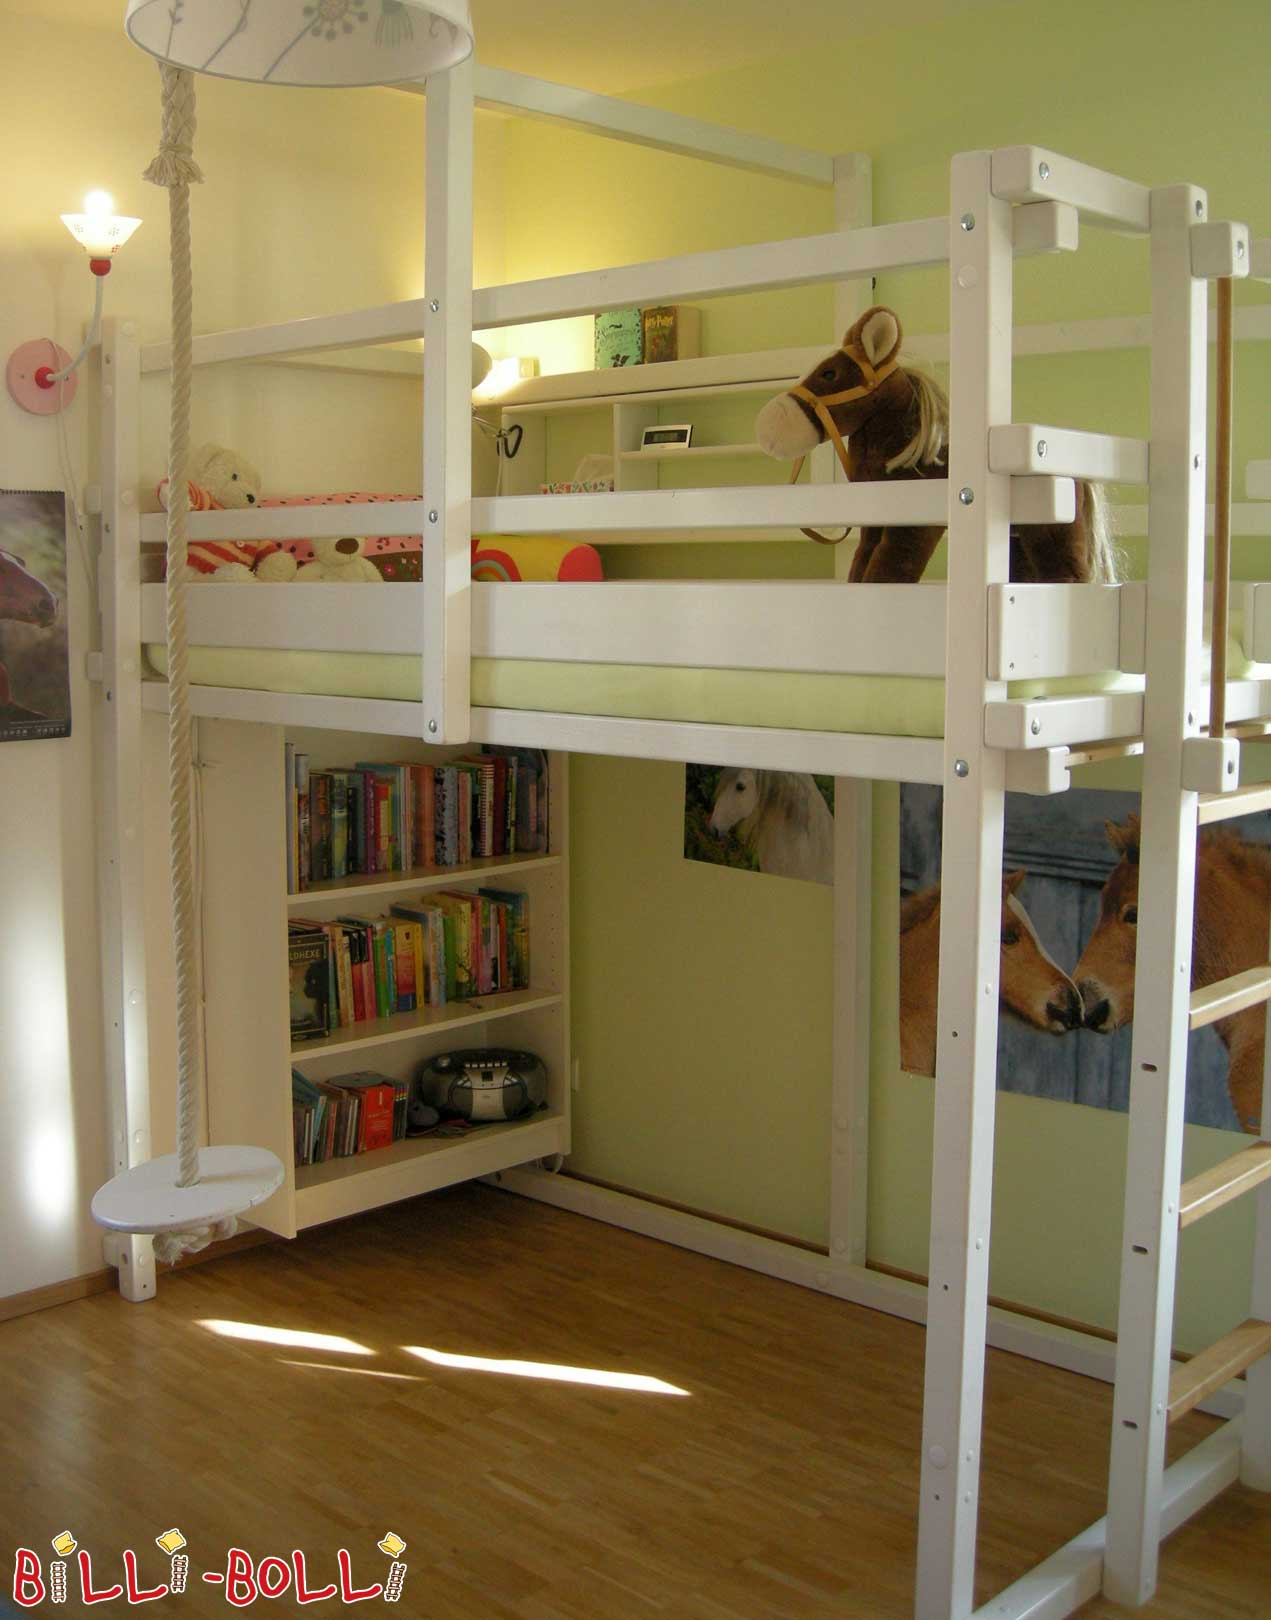 High Bed 100 x 200 cm, Spruce painted white (second hand loft bed)